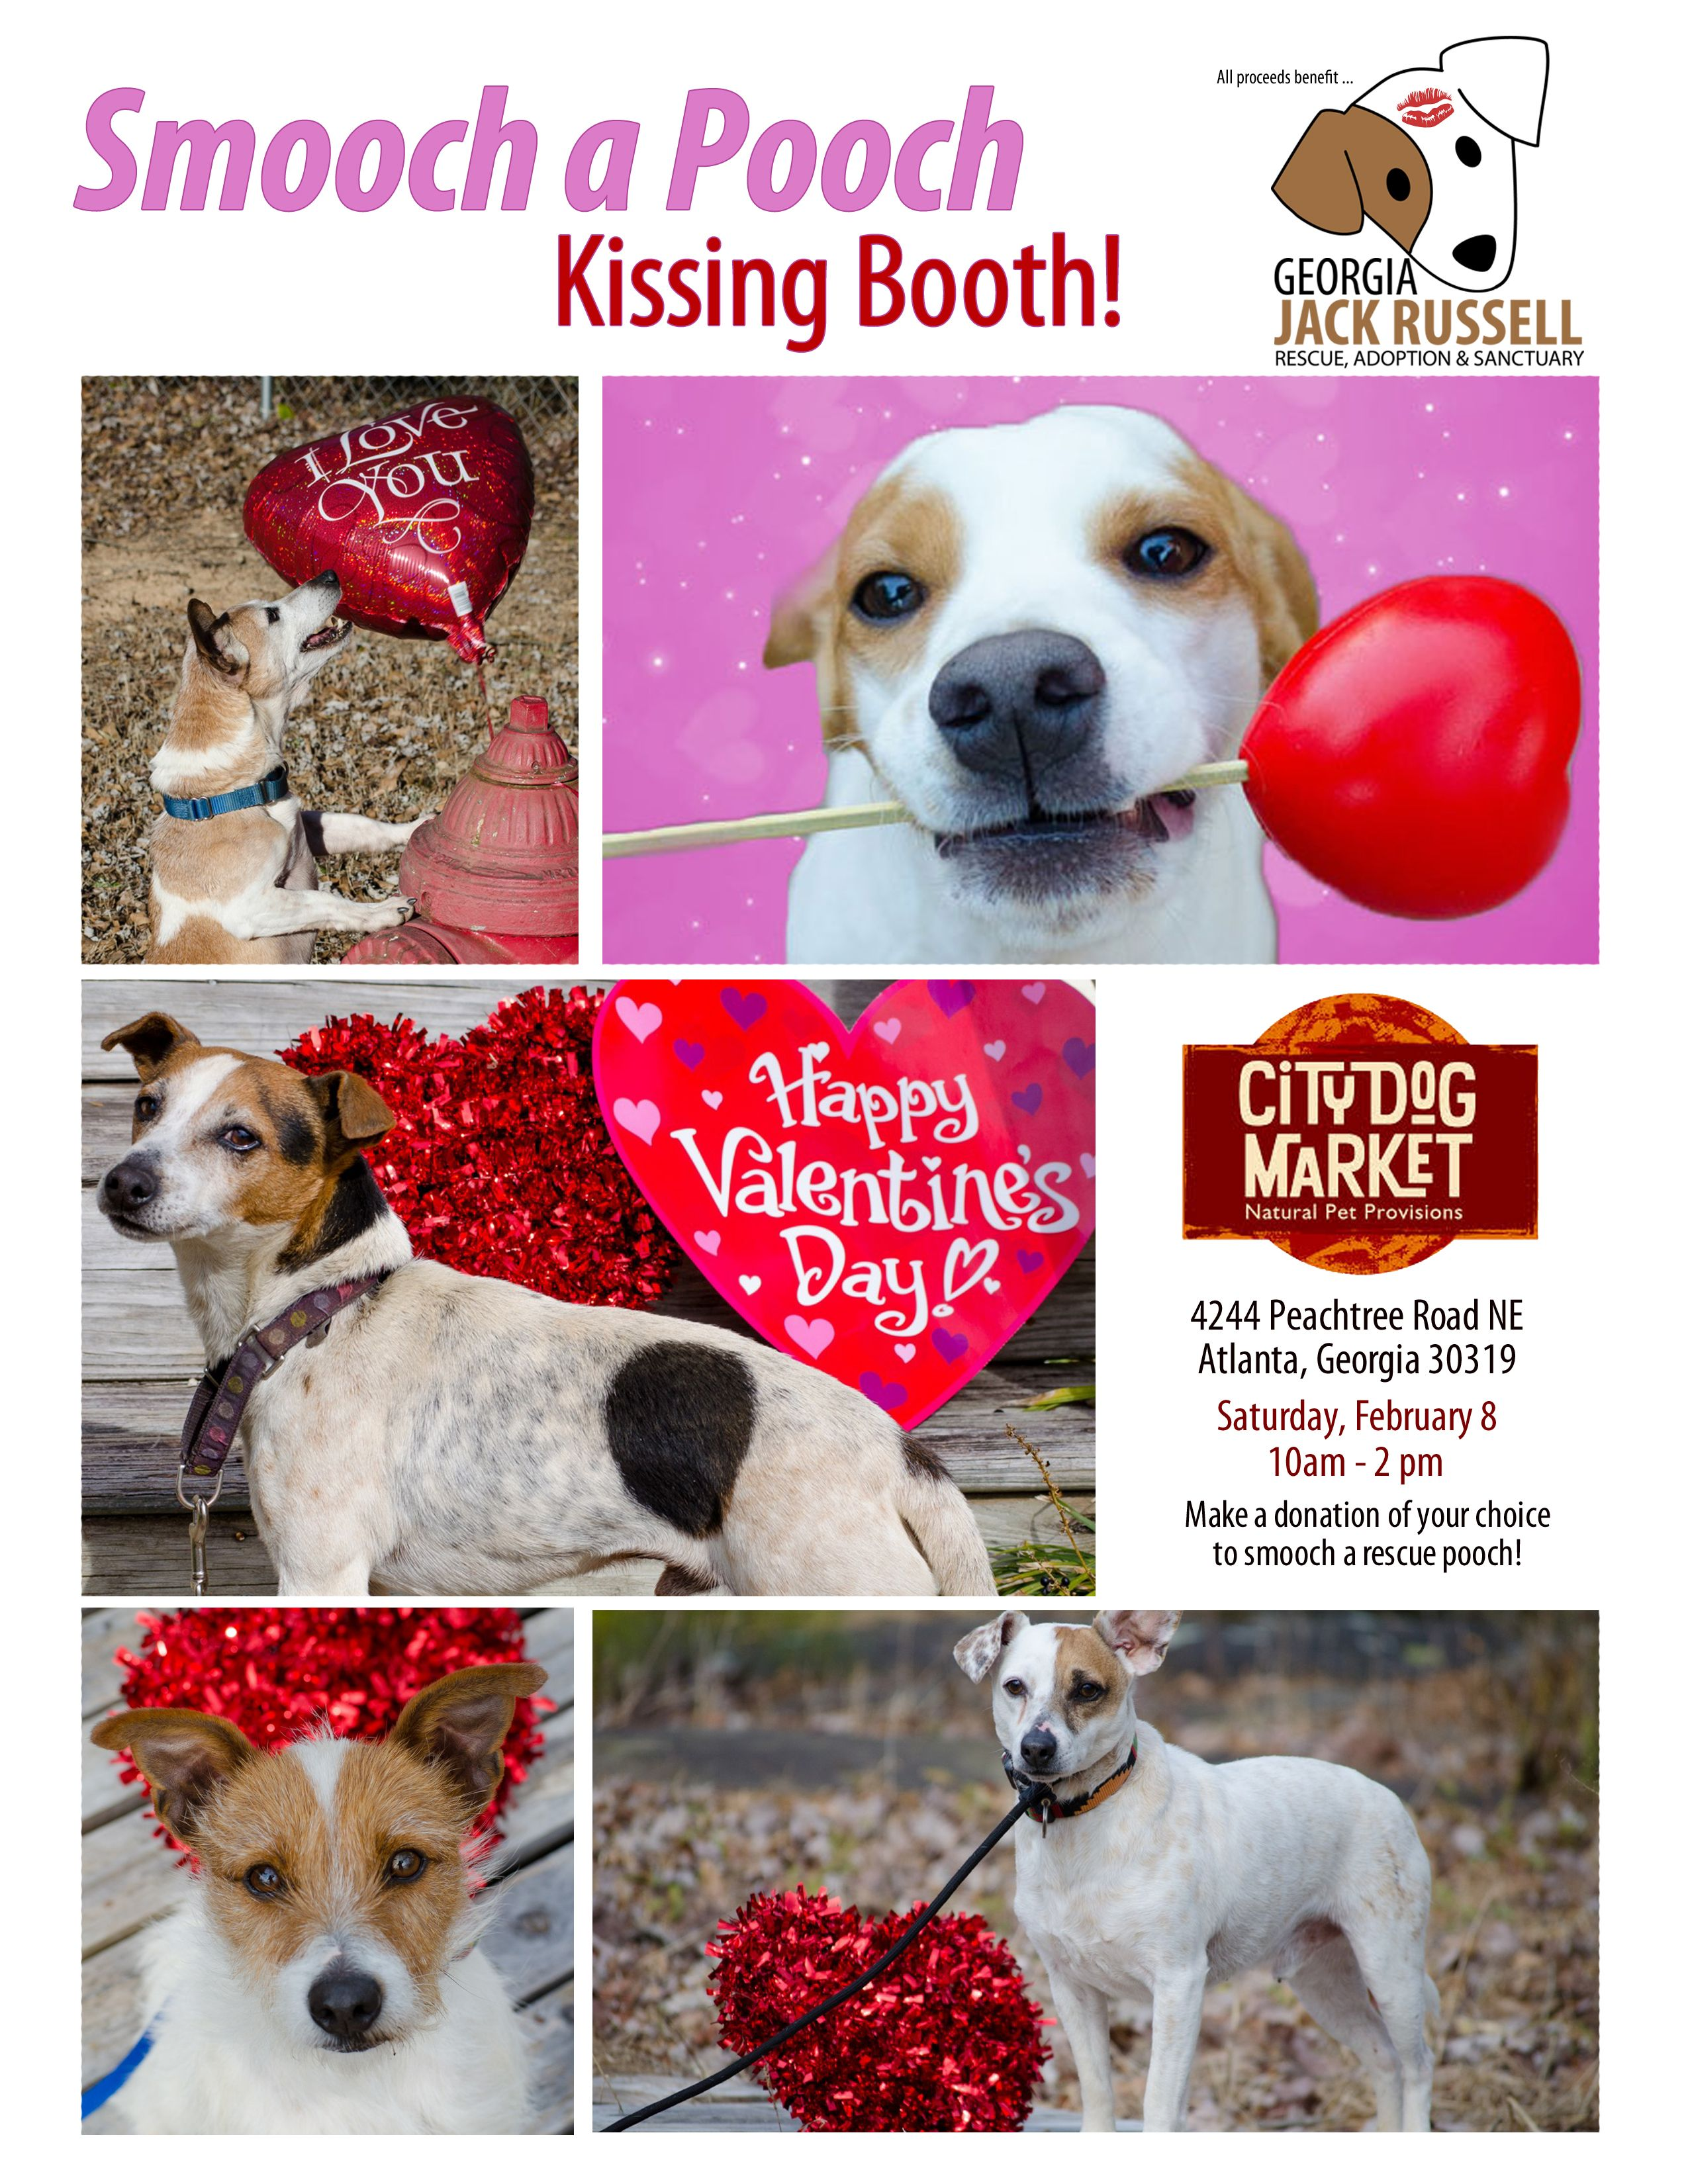 Smooch a Pooch Flyer Rescue dogs for adoption, Kissing